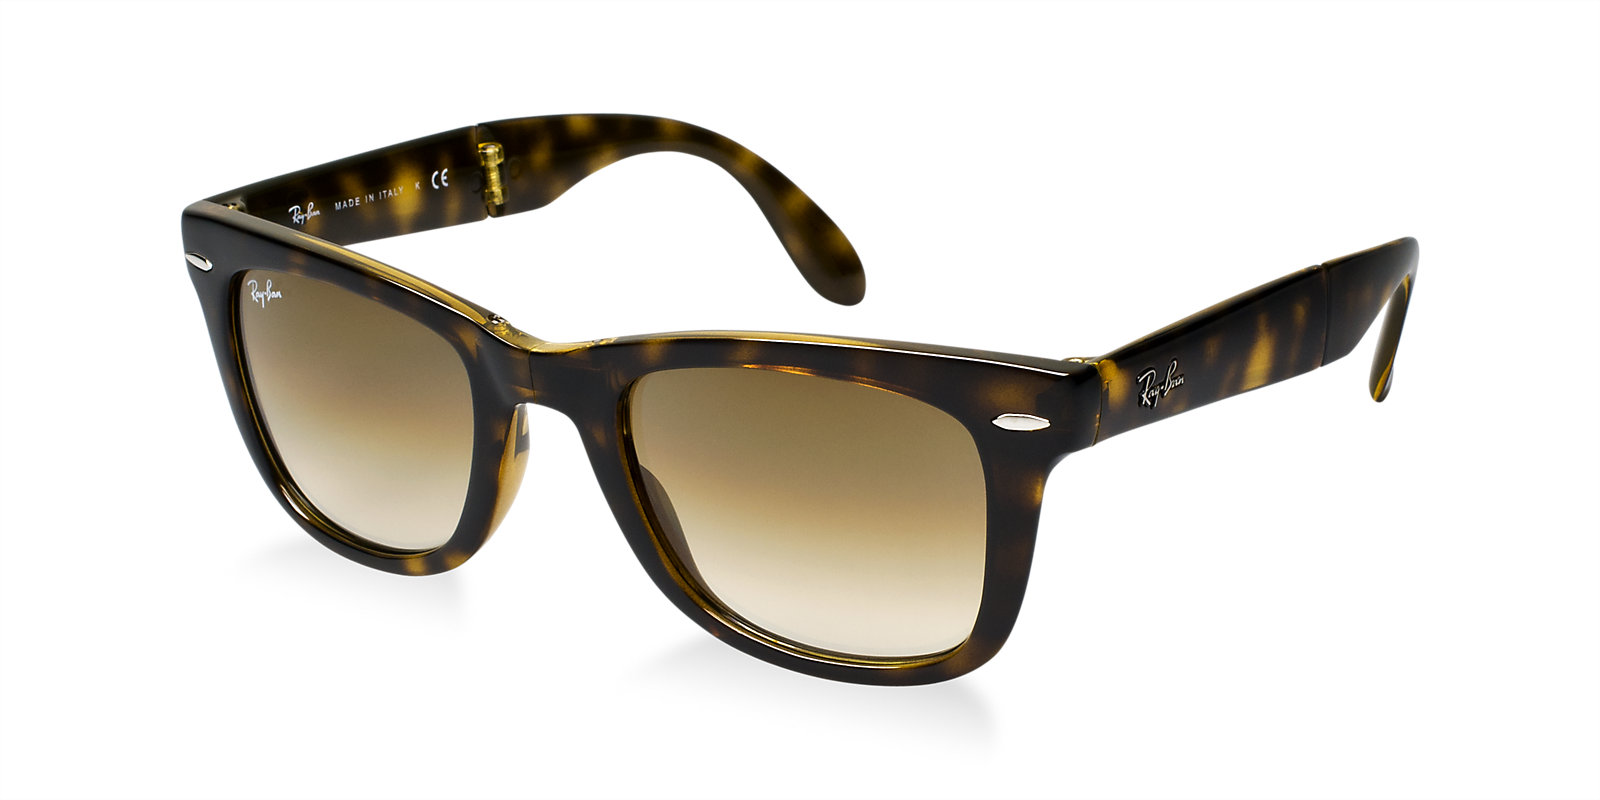 9b20412cc0 Previous  Next. Previous  Next. RAY-BAN RB4105 710 51 TORTOISE GRADIENT FOLDING  WAYFARER SUNGLASSES